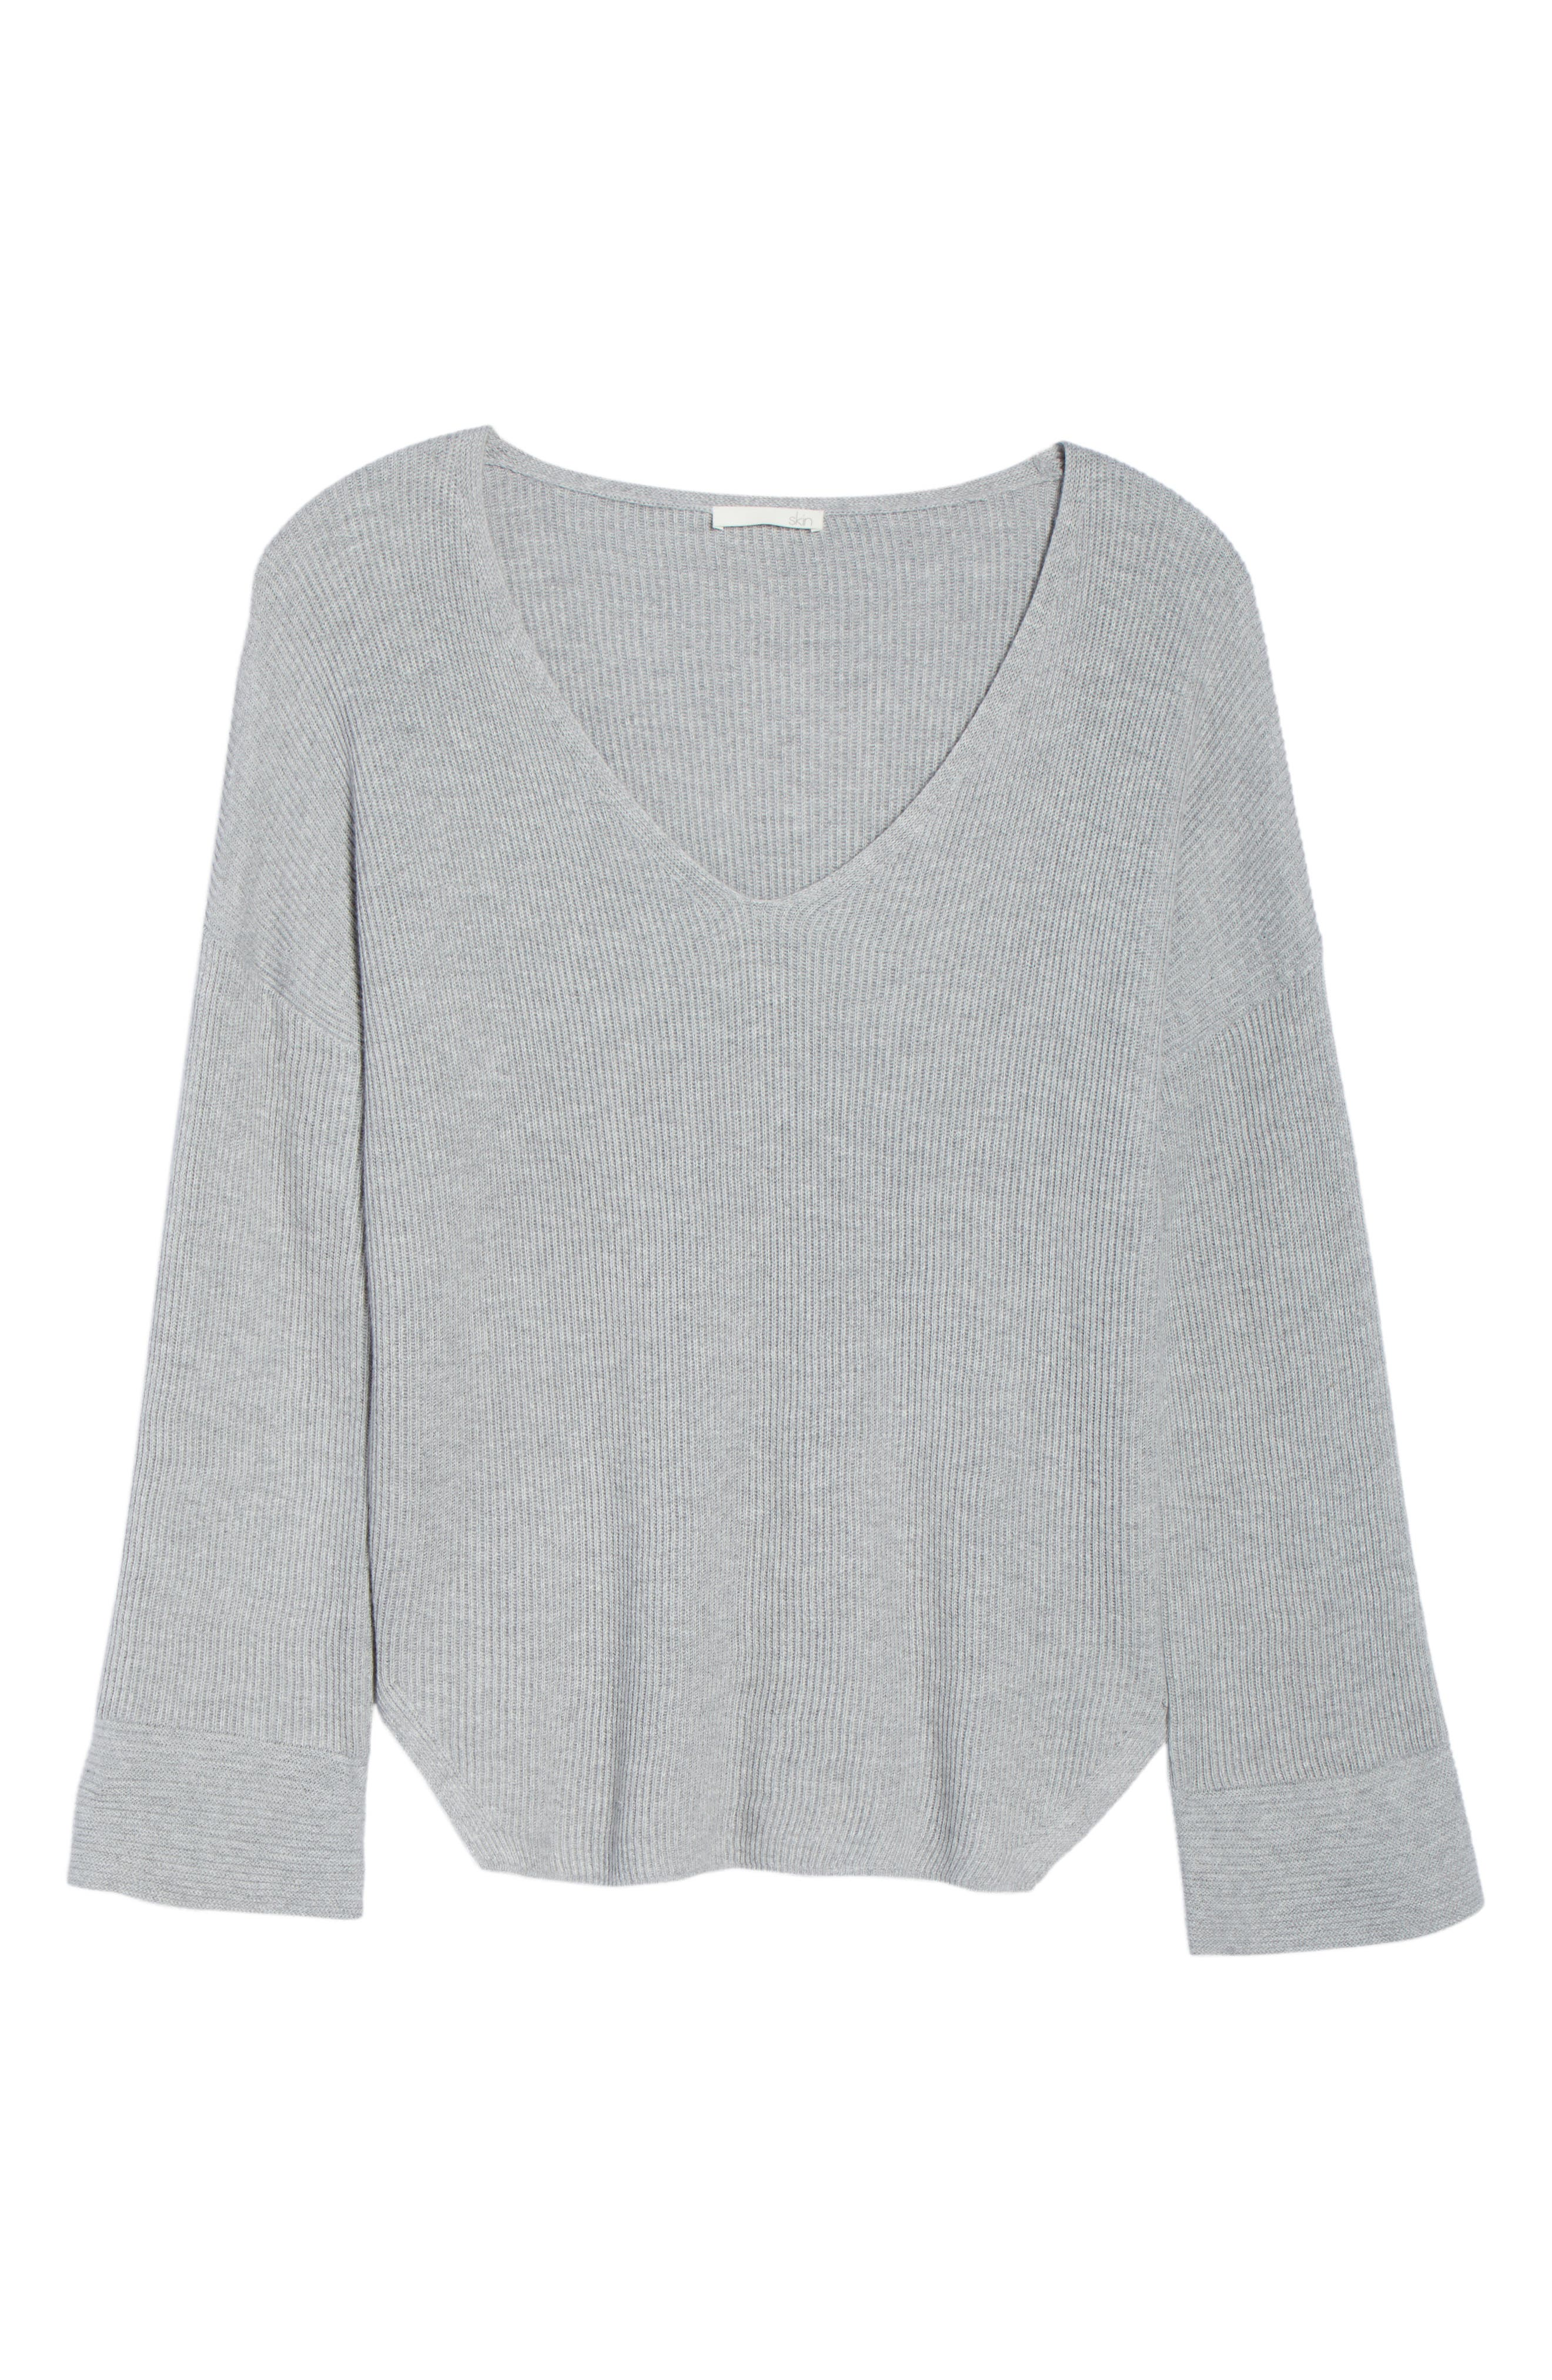 Veronica Lounge Pullover,                             Alternate thumbnail 11, color,